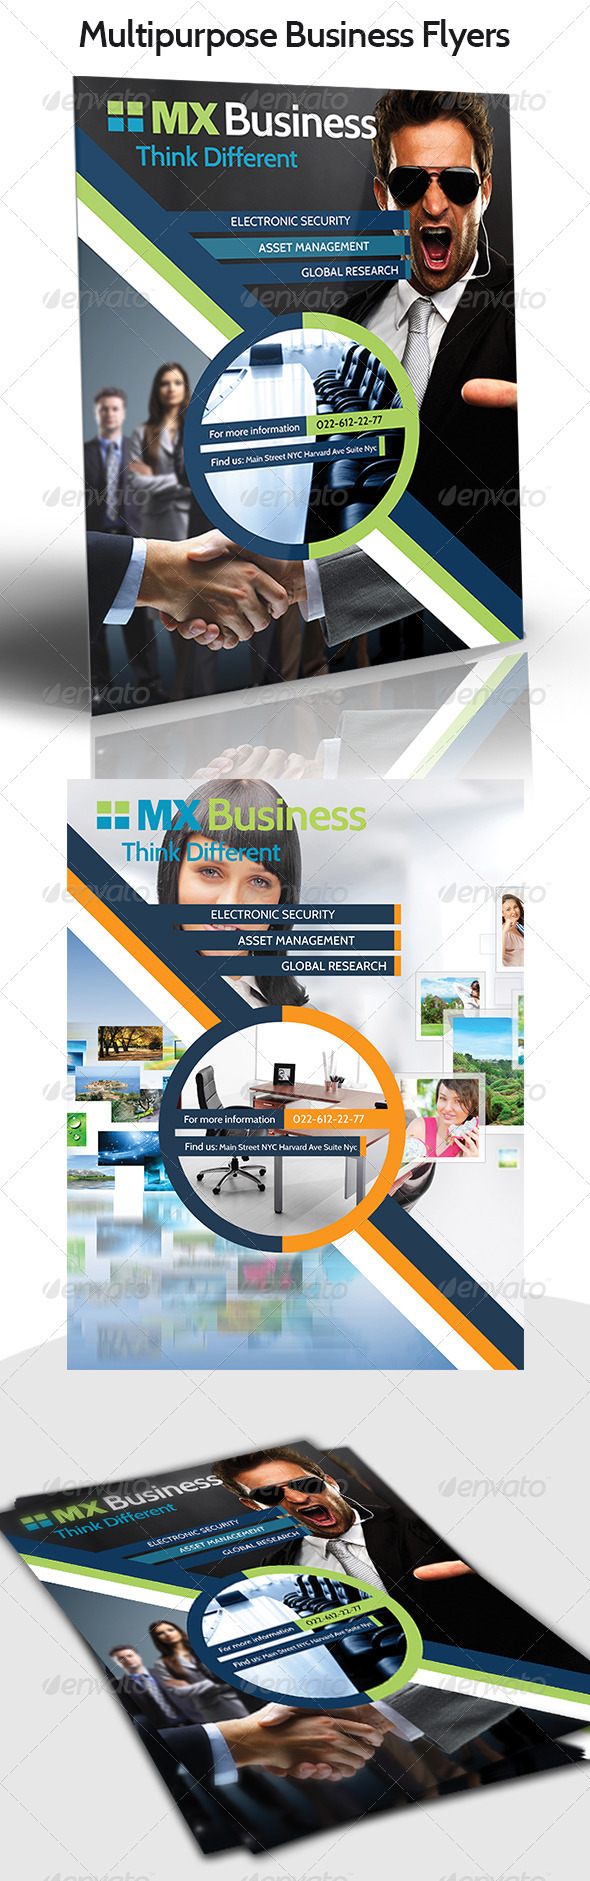 Mx Business Flyer - Corporate Flyers